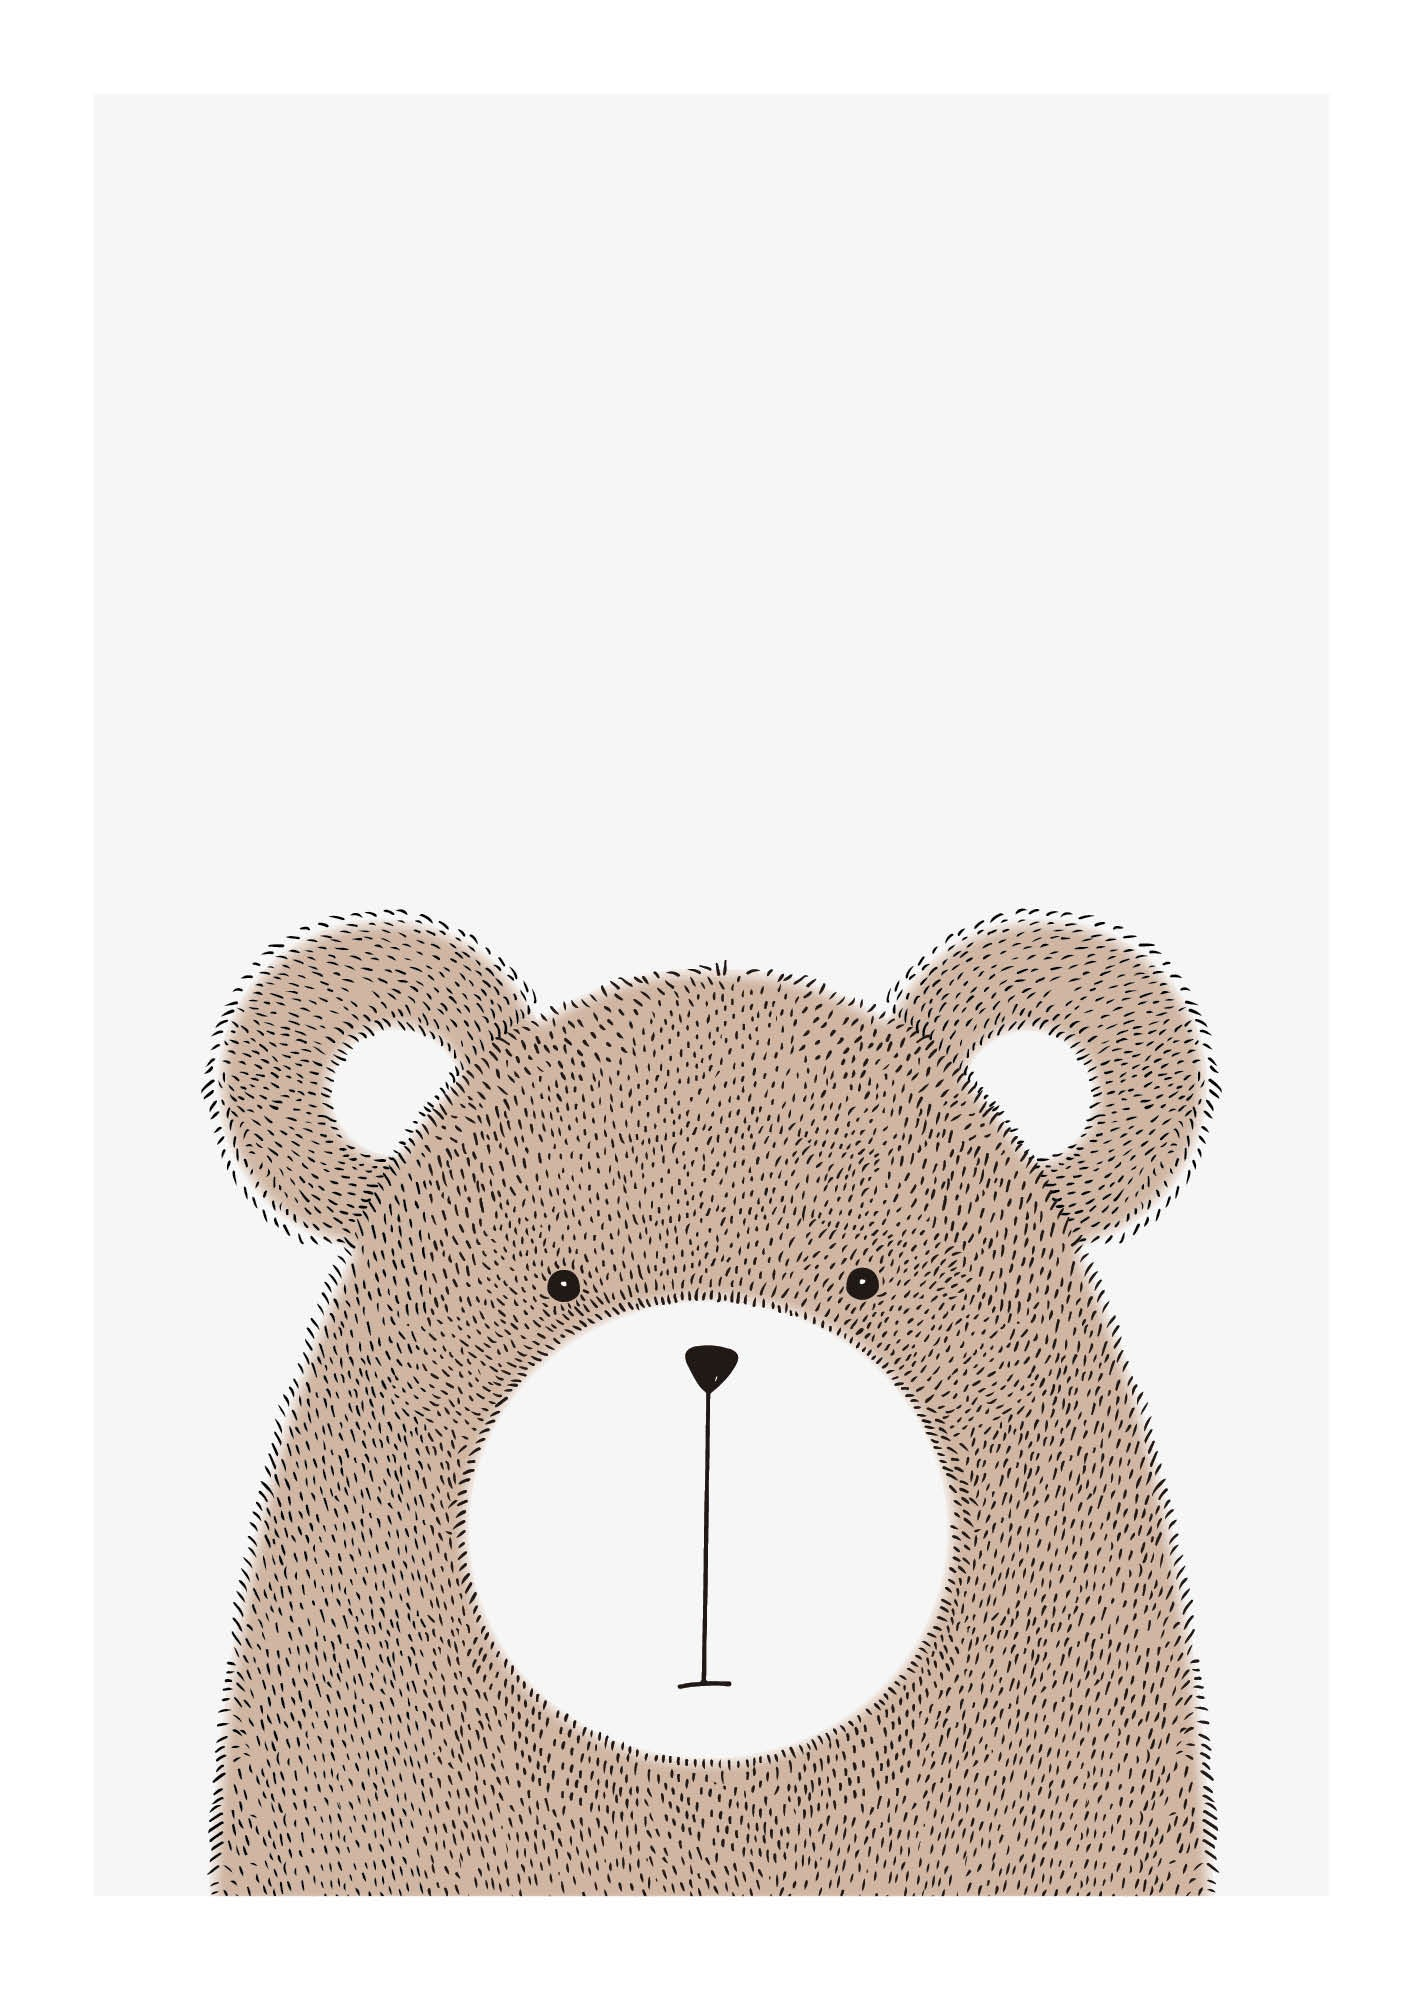 Bear - Plakat fra Paper Stories